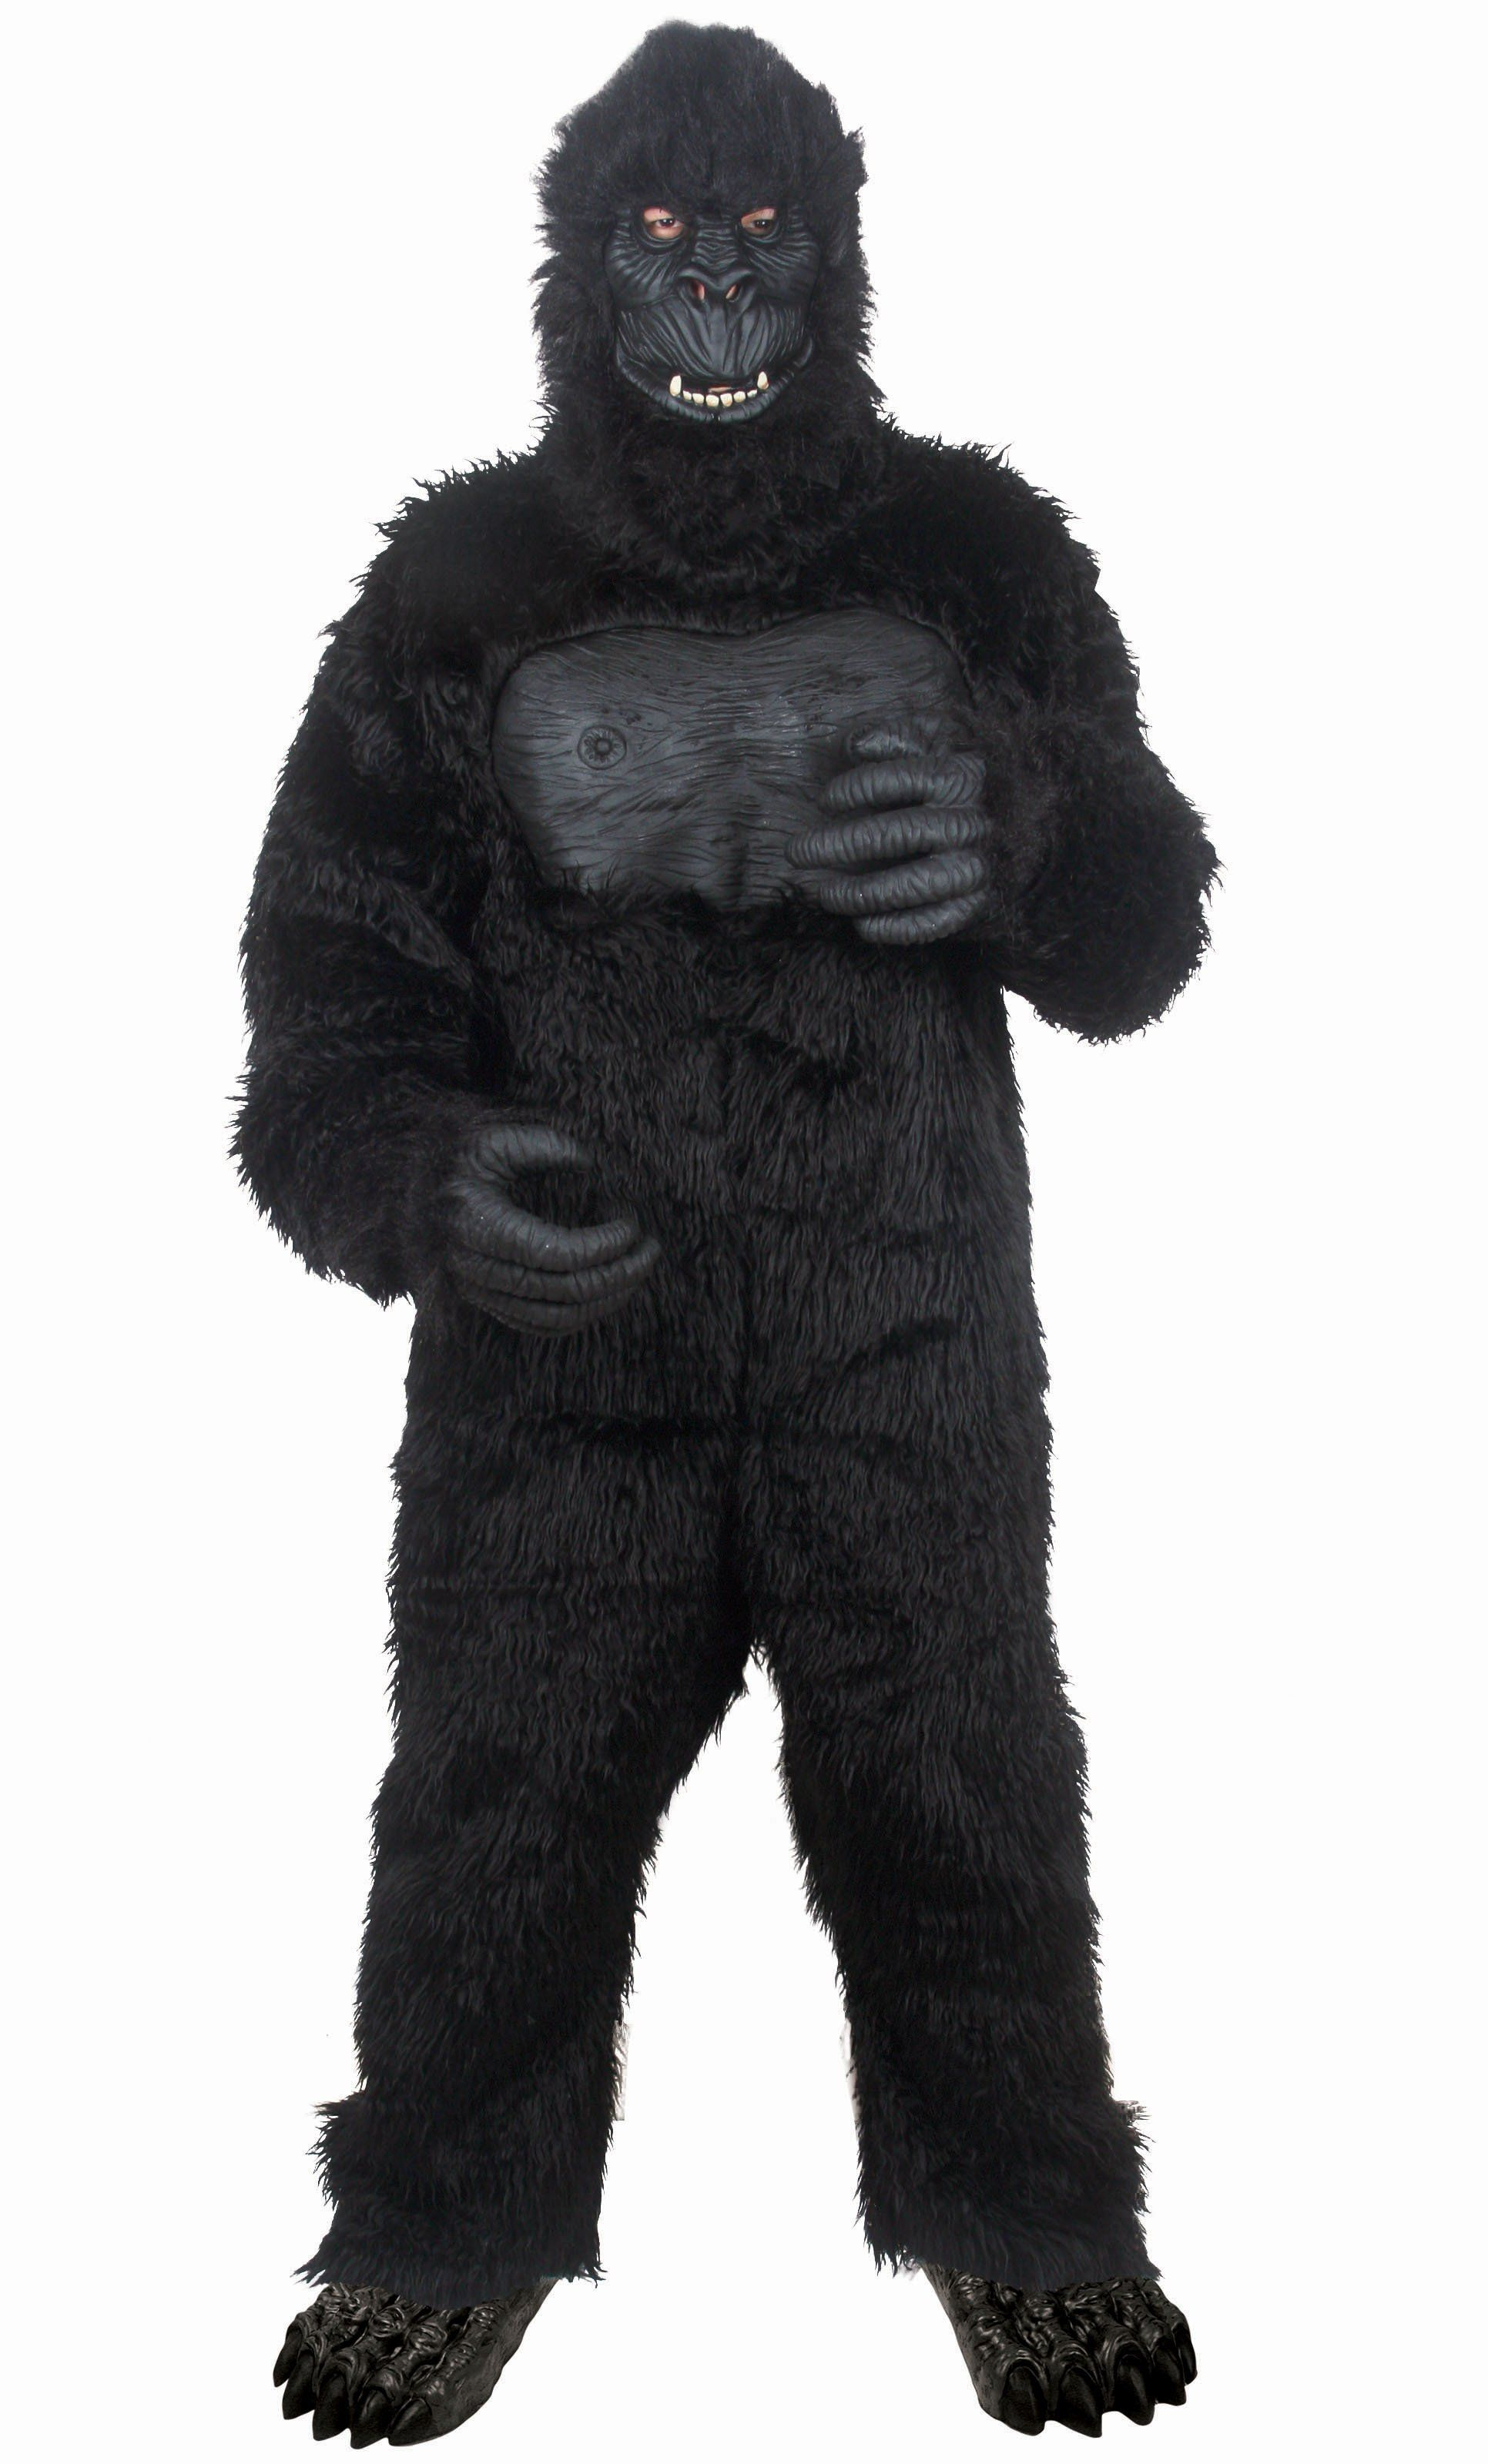 for &70 bucks this is a great adult gorilla costume. Reminds m of ...